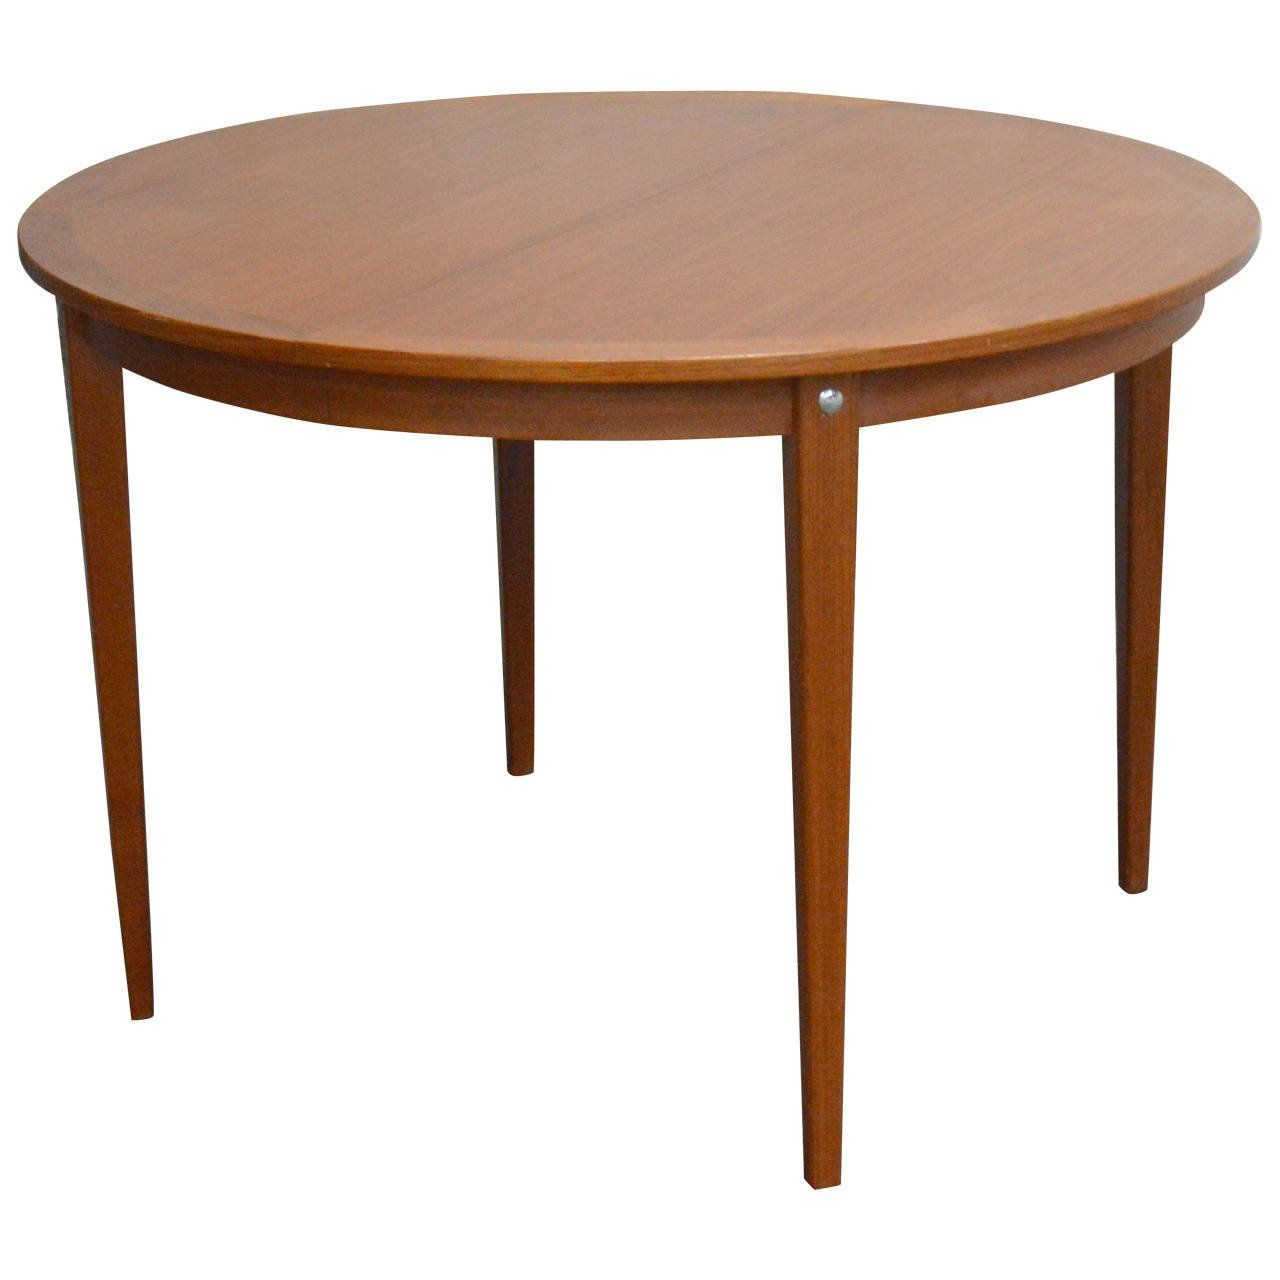 Mid Century Modern Round Swedish Teak Dining Table Round Dining